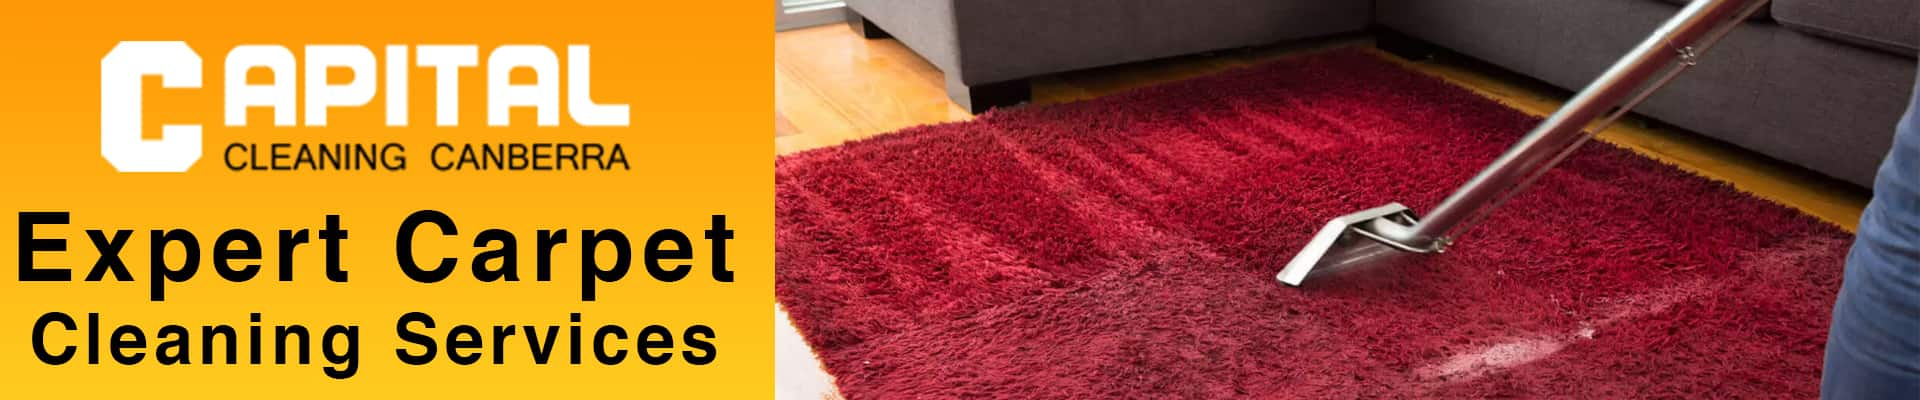 Expert Carpet Cleaning Services Casey